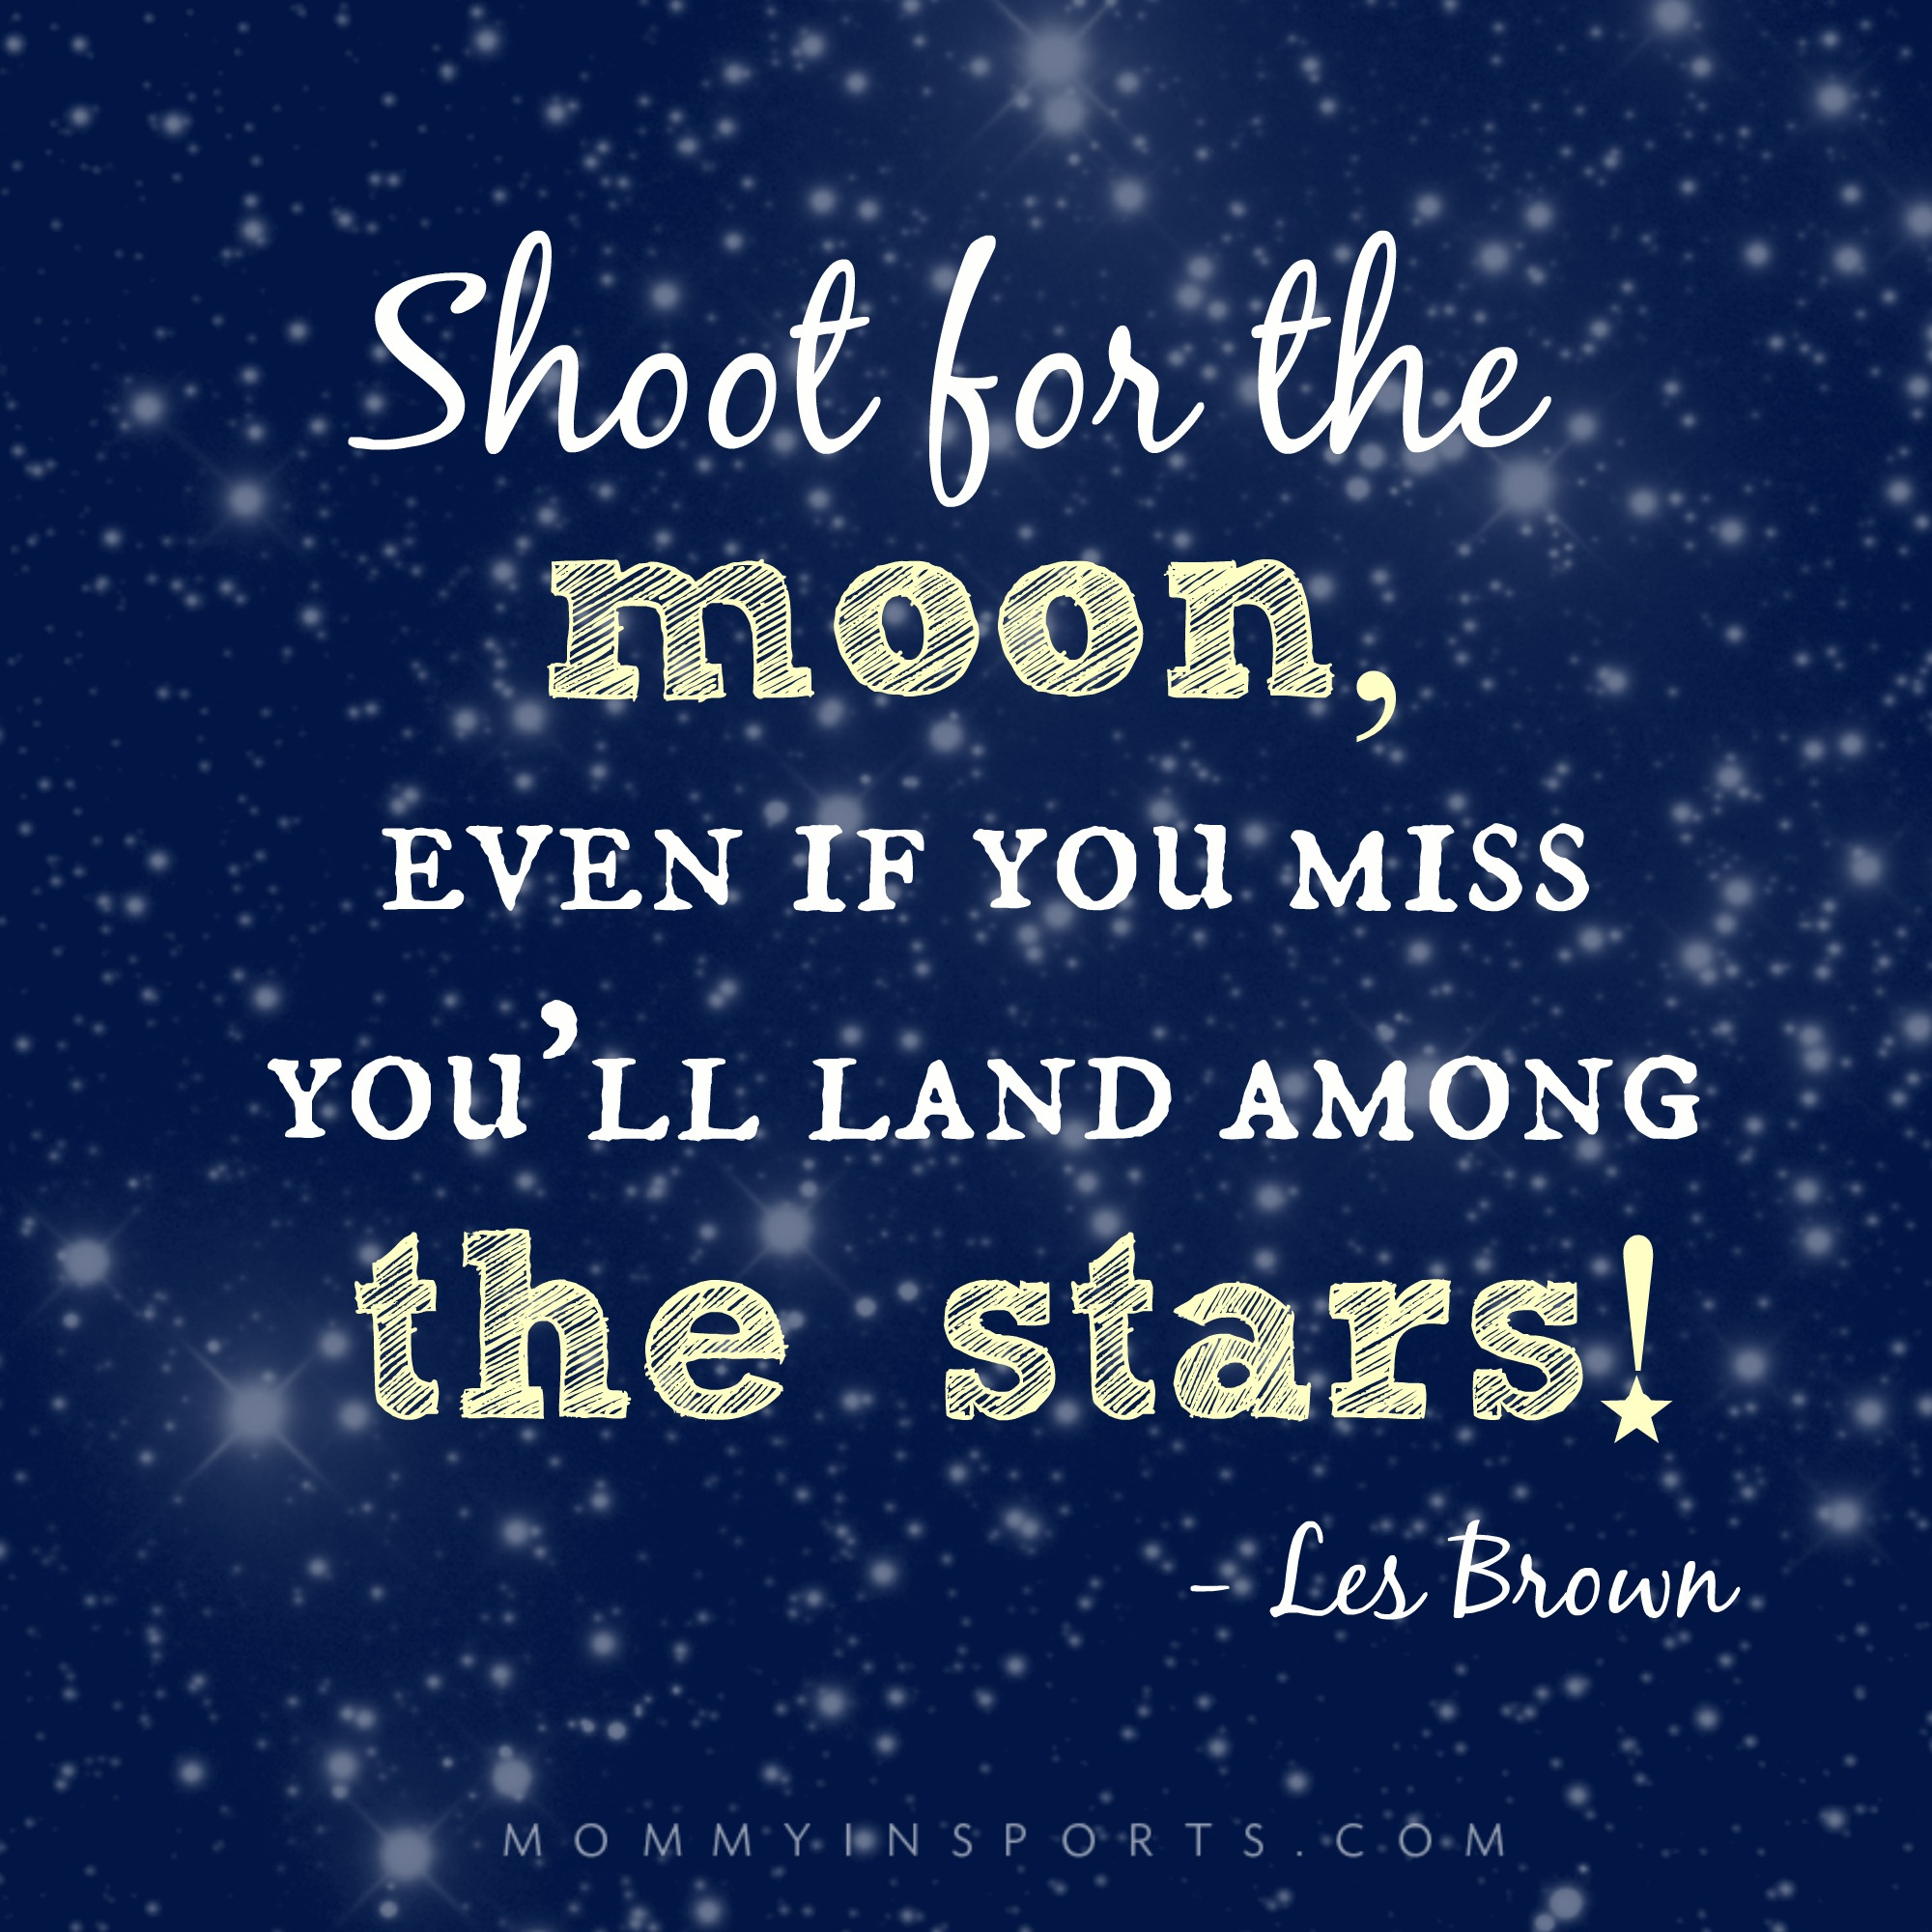 Inspirational Quotes On Pinterest: Shoot-for-the-moon-quote.jpg